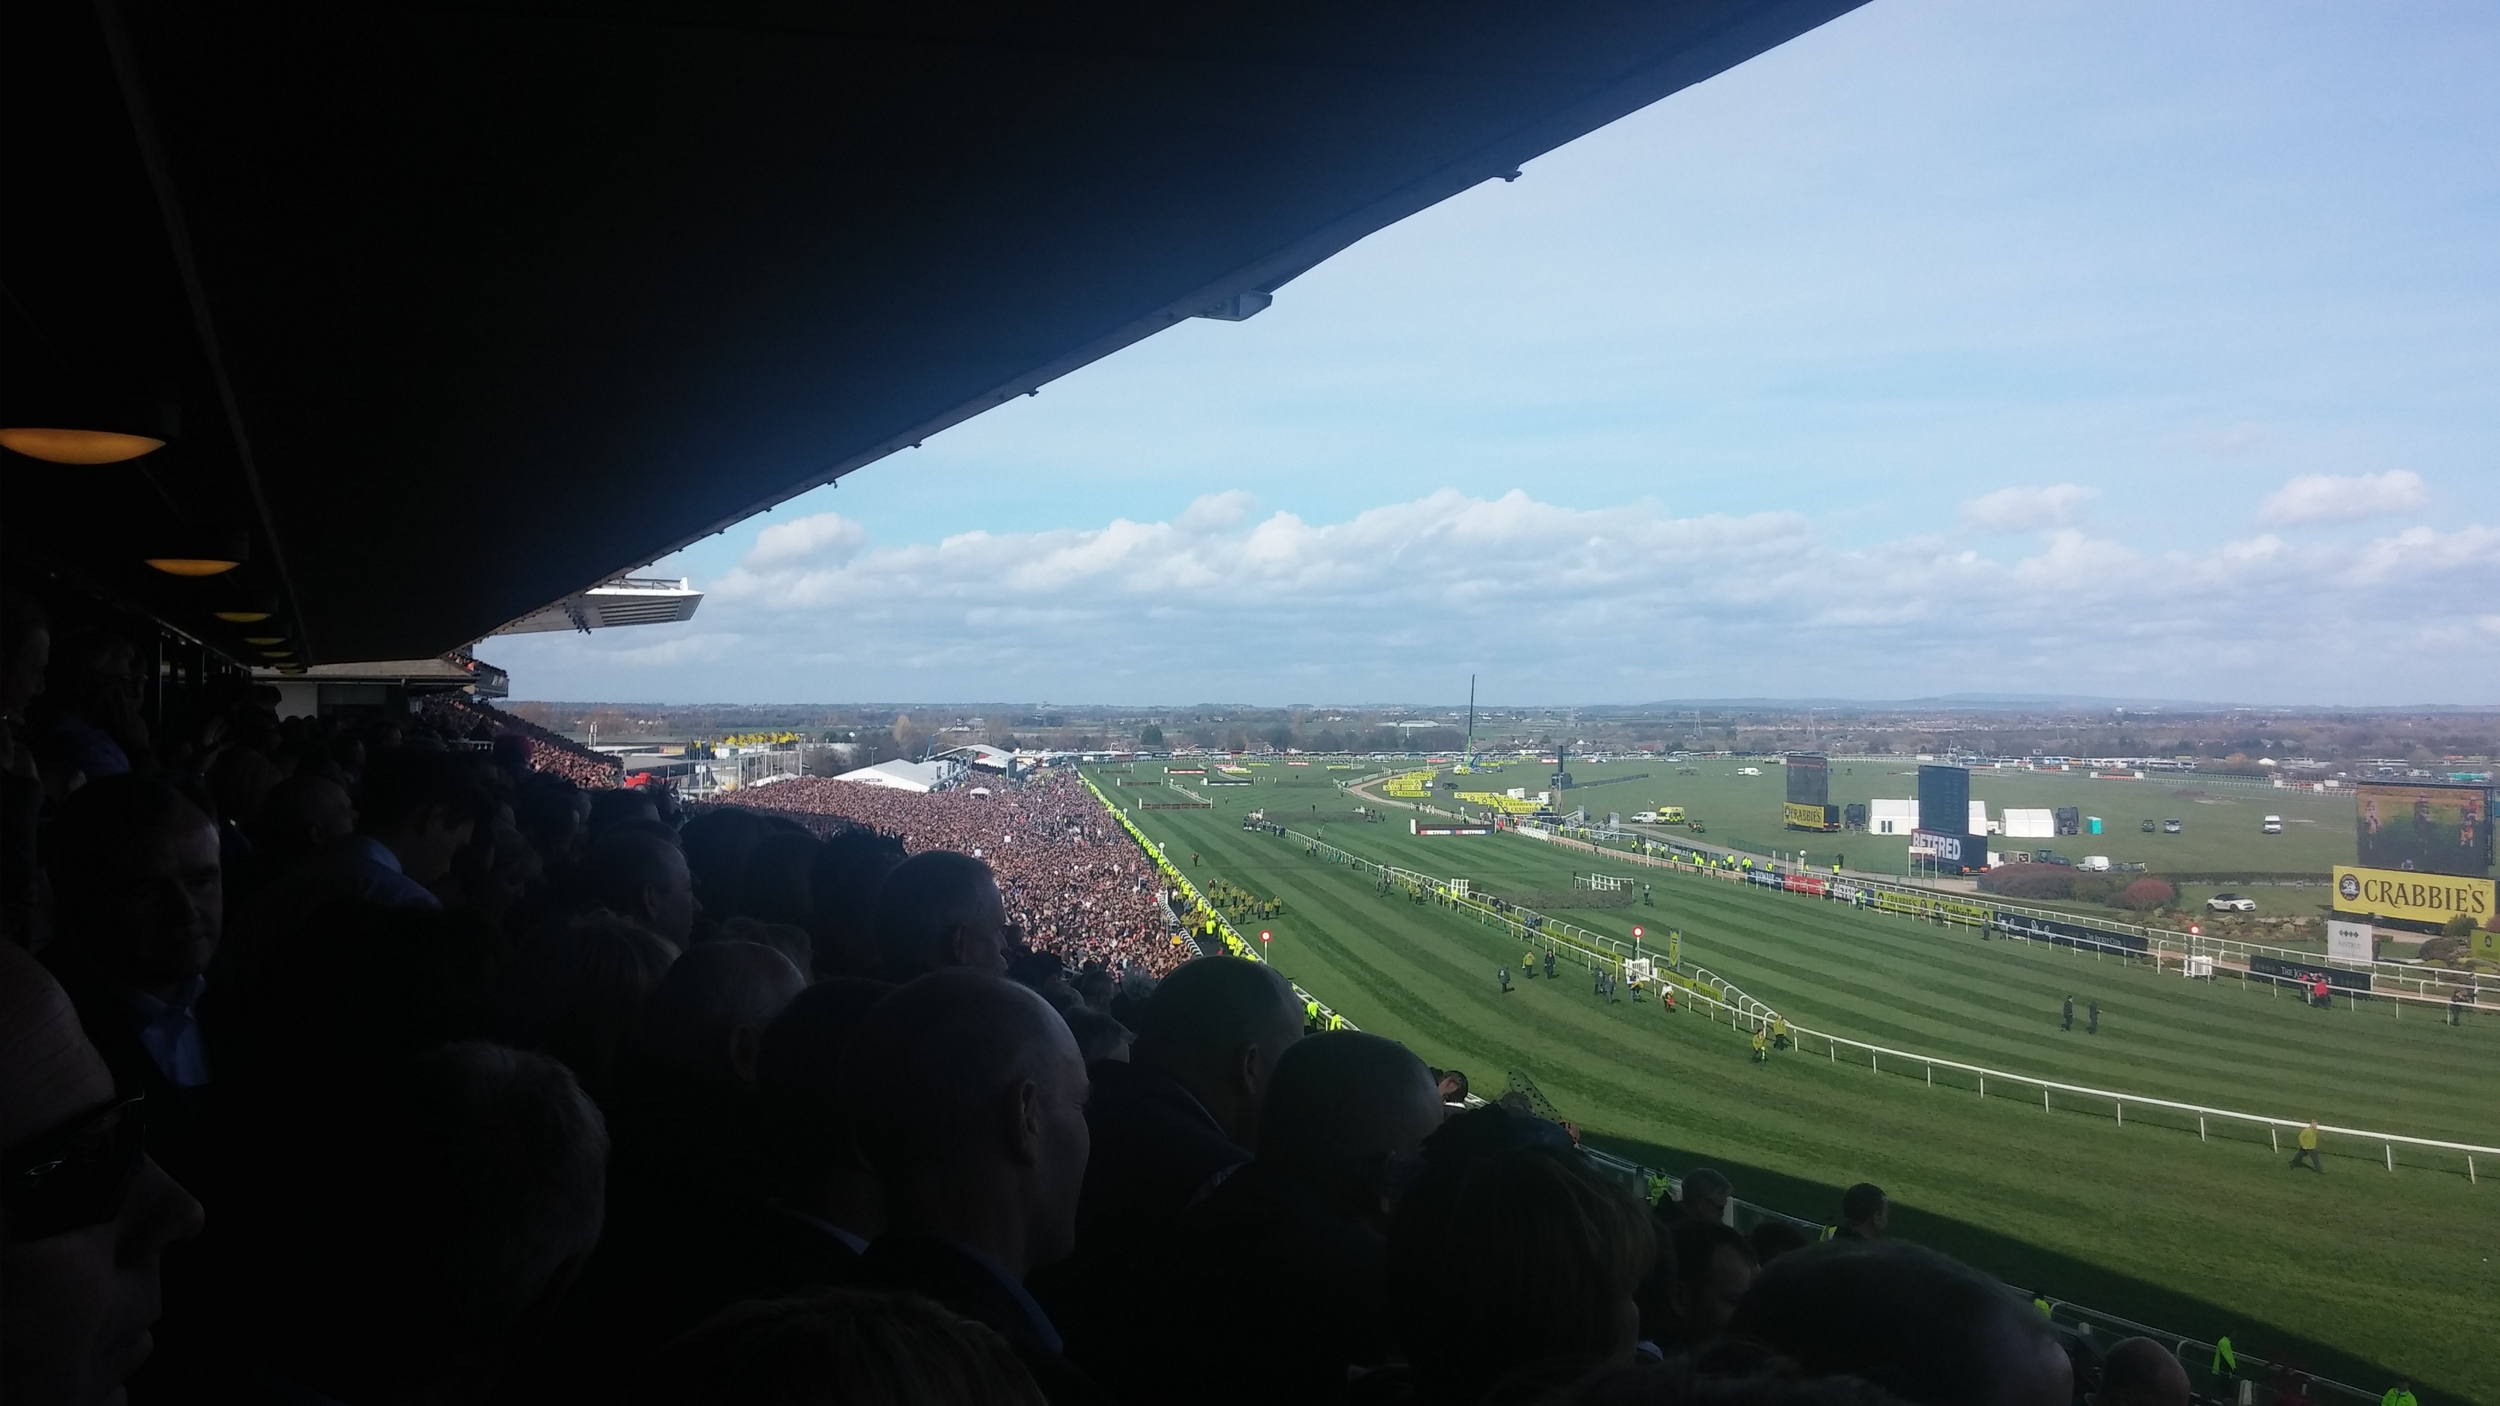 Even when I was poached to work at the Grand National I got a pretty good view